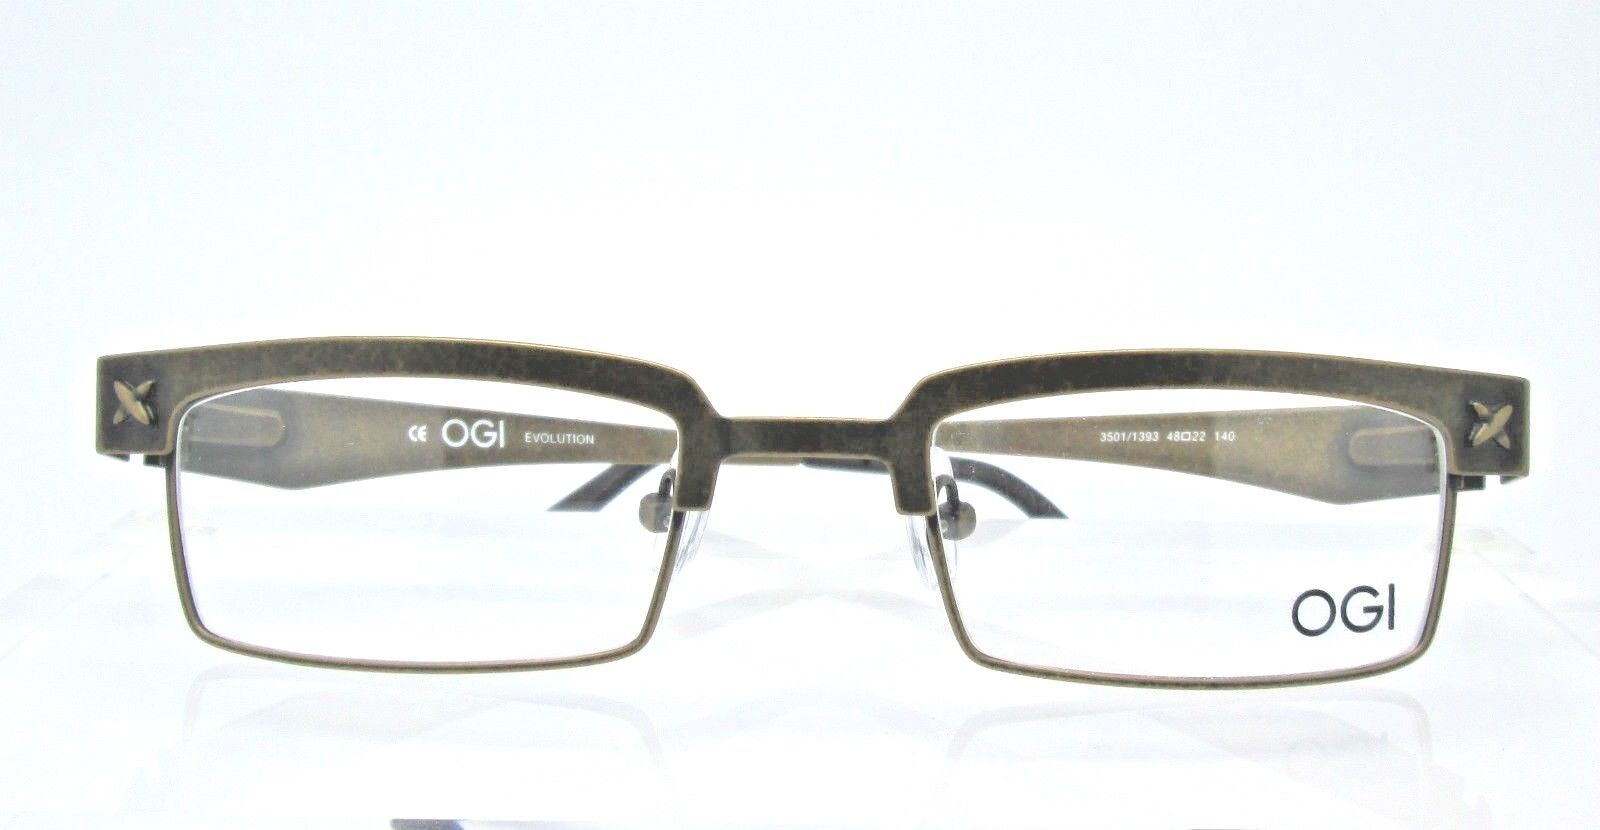 6c7f30baed6 OGI Eyewear 3501 Evolution Womens Mens Glasses Eyeglasses Frames ...